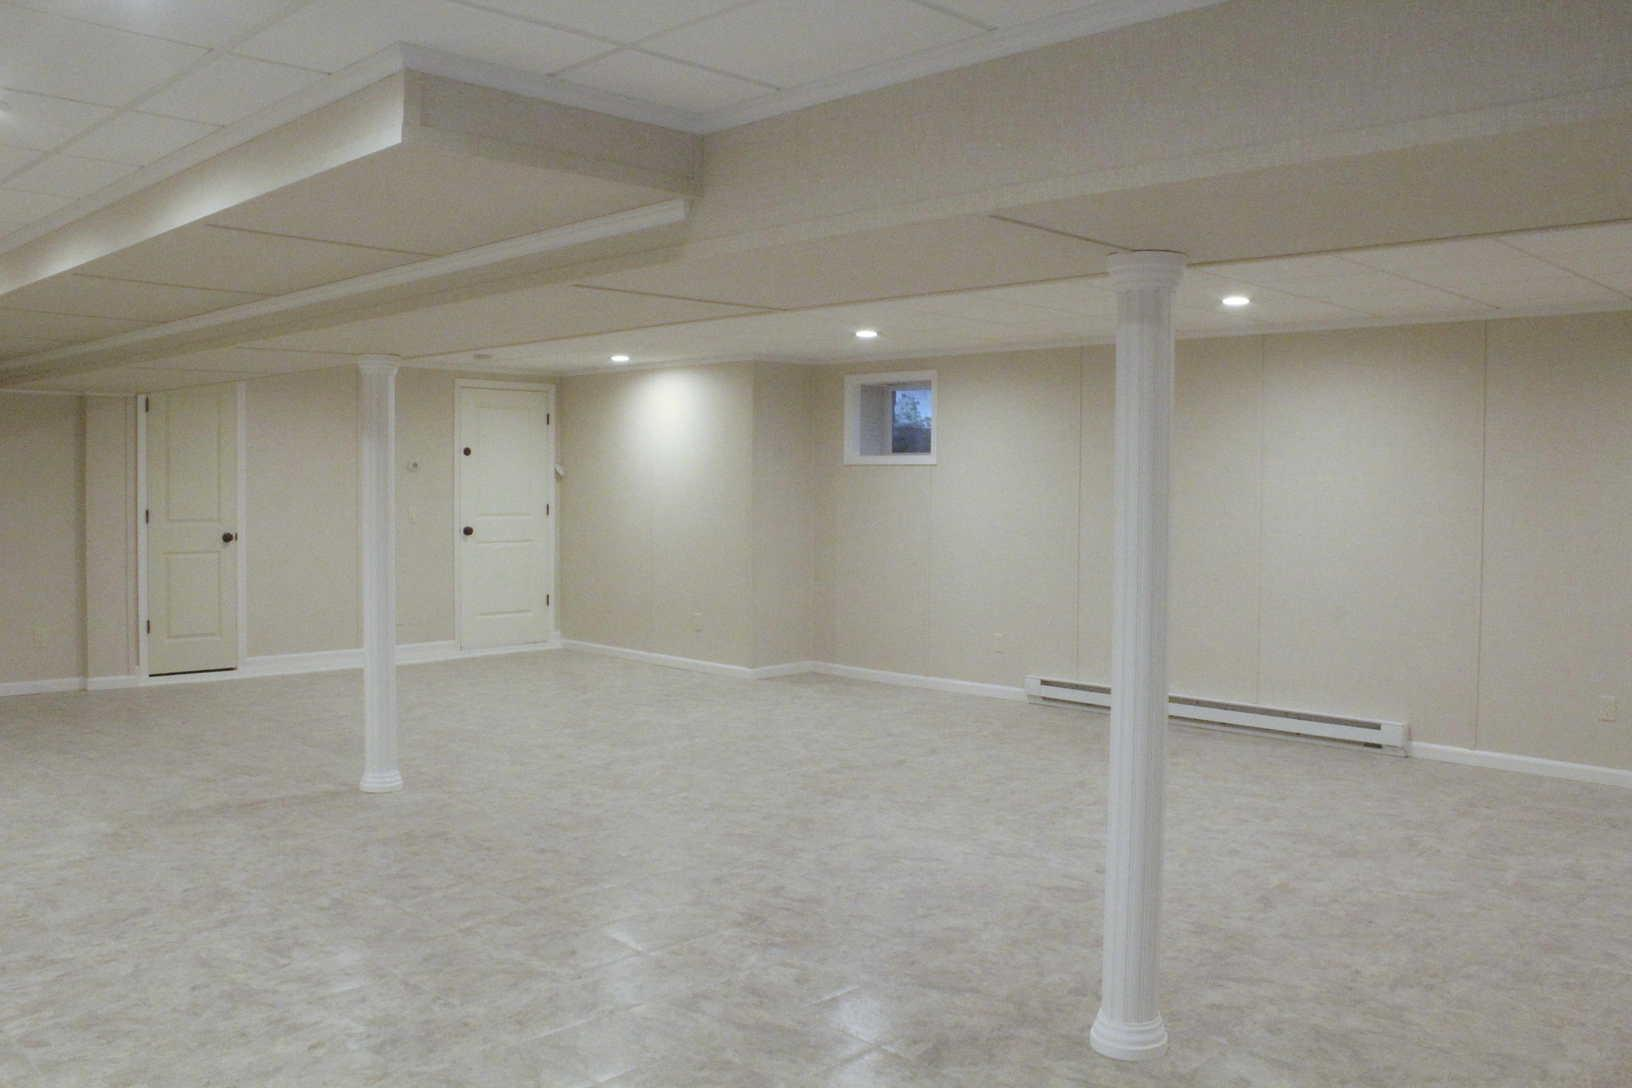 Stunning Bangor, ME Basement Remodel - After Photo